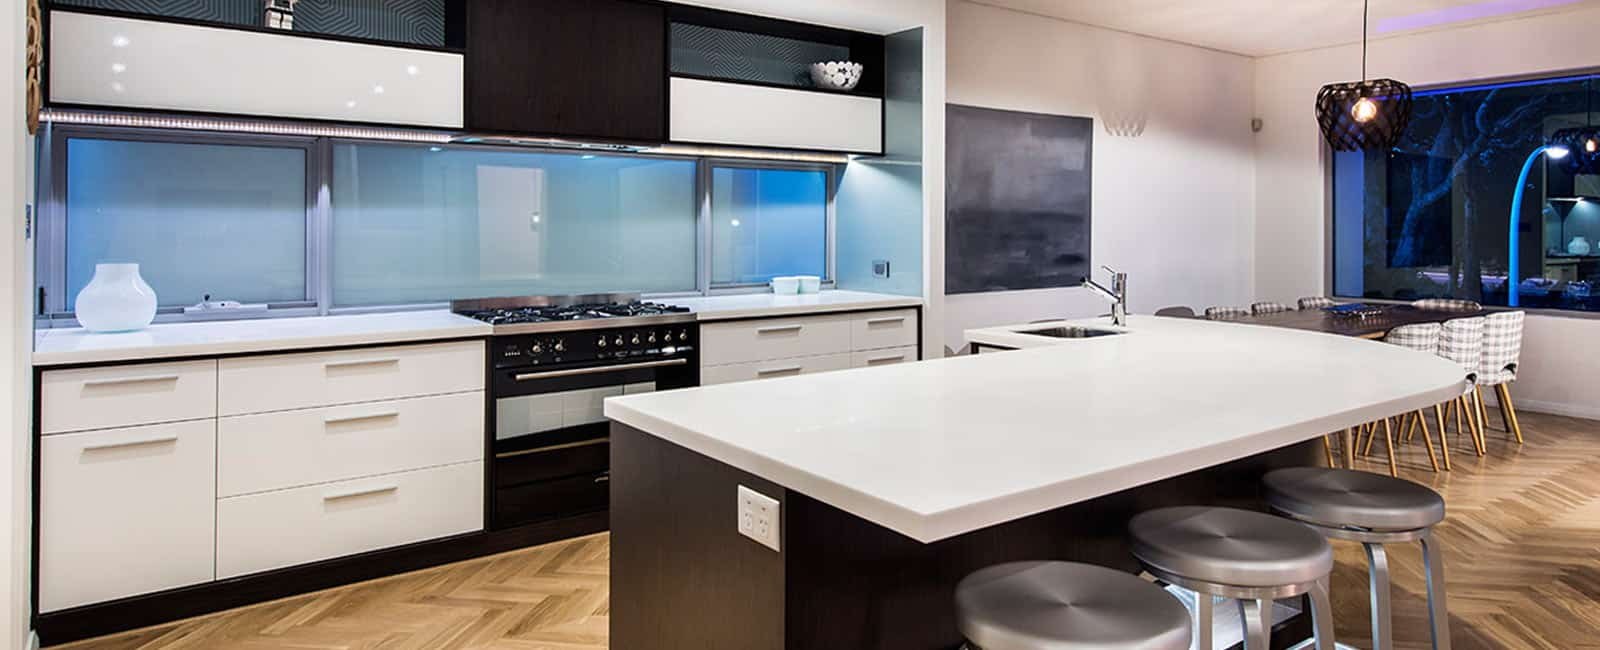 Kitchens Perth | Kitchen Design & Renovations - Kitchen ...